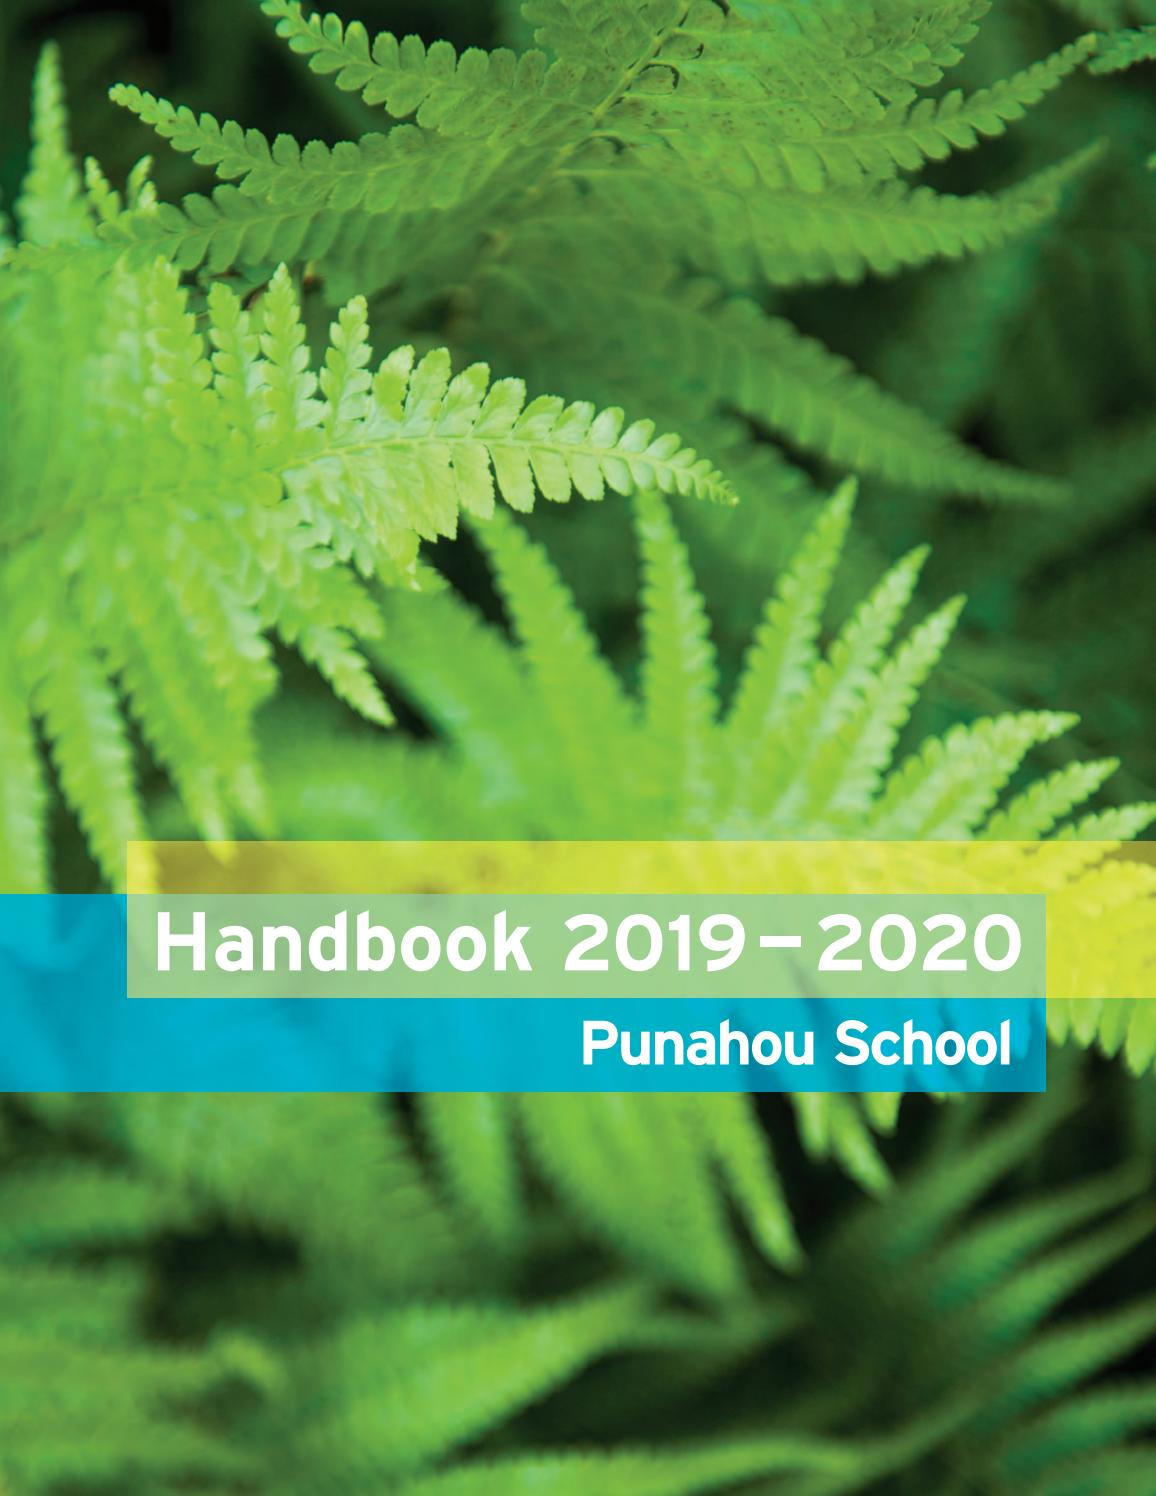 University Of Idaho Spring Break 2020.Punahou School Handbook 2019 2020 By Punahou School Issuu